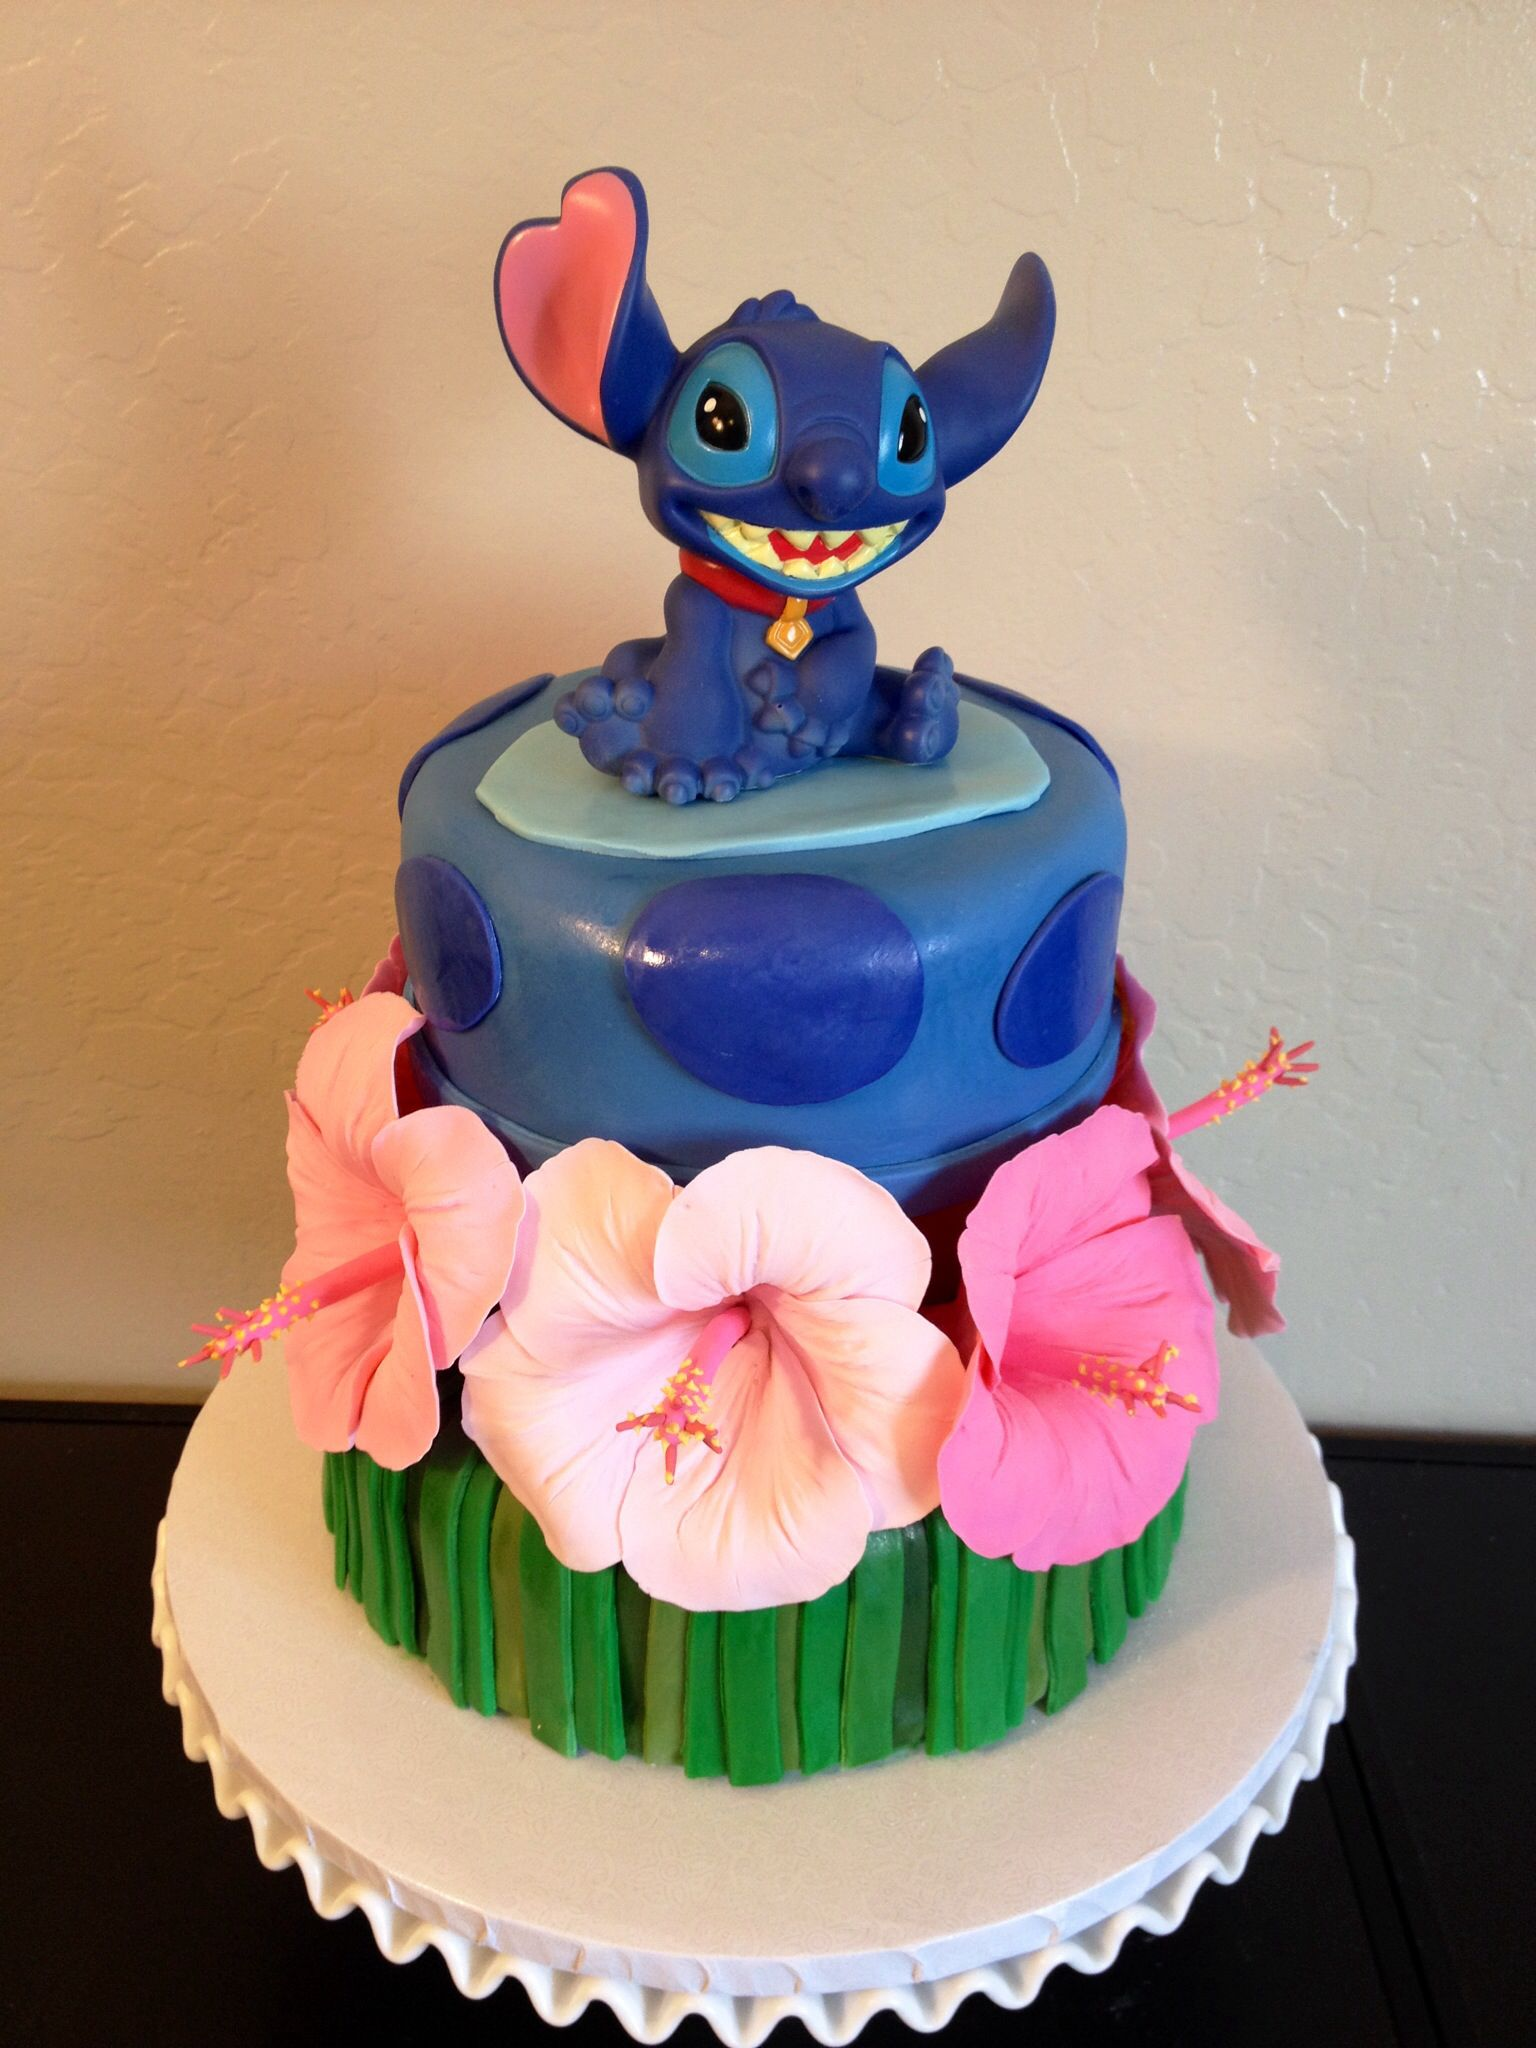 Lilo And Stitch Cake With Gum Paste Hibiscus Flowers Cakes By